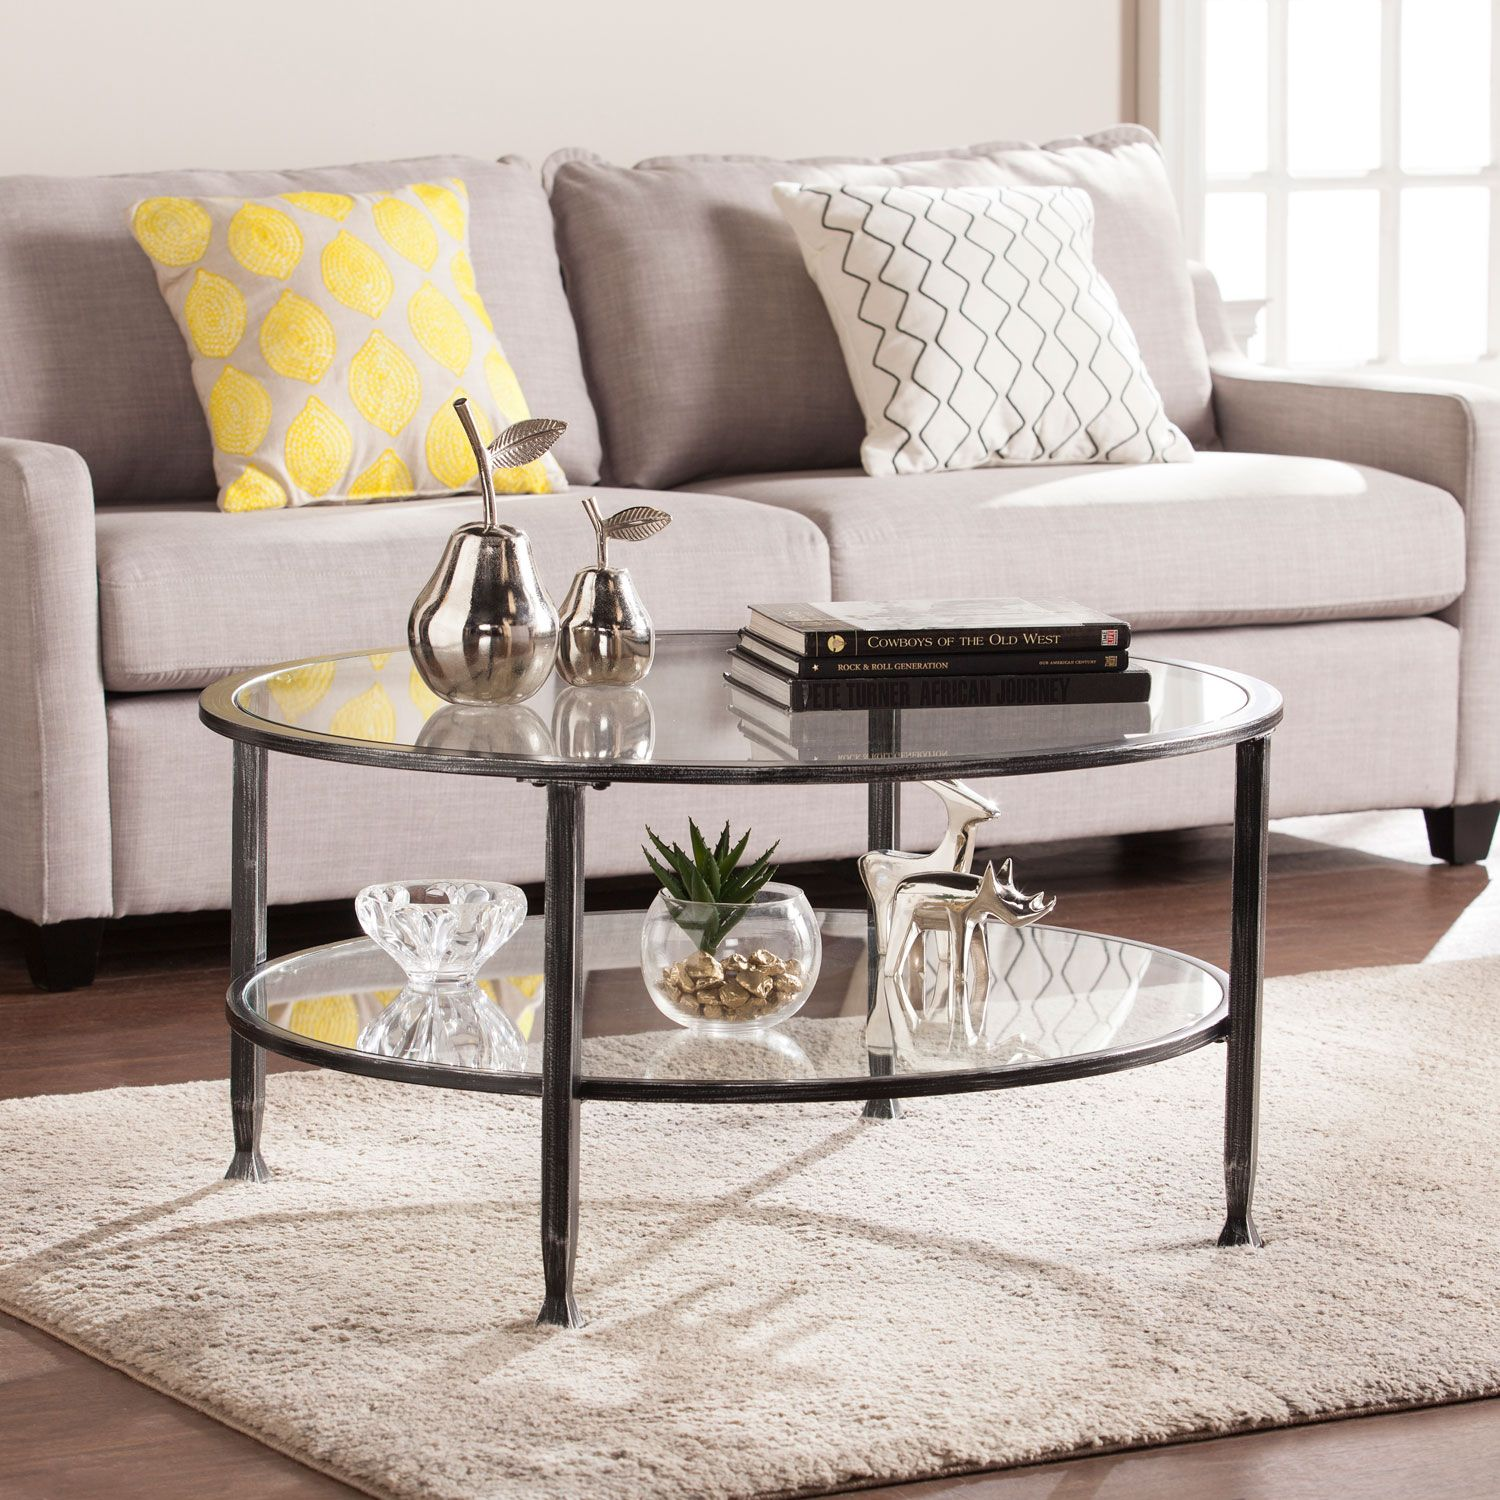 Southern Enterprises Jaymes Black Metal And Glass Round Cocktail Table Ck8740 Bellacor In 2021 Living Room Coffee Table Round Metal Coffee Table Coffee Table With Shelf [ 1500 x 1500 Pixel ]